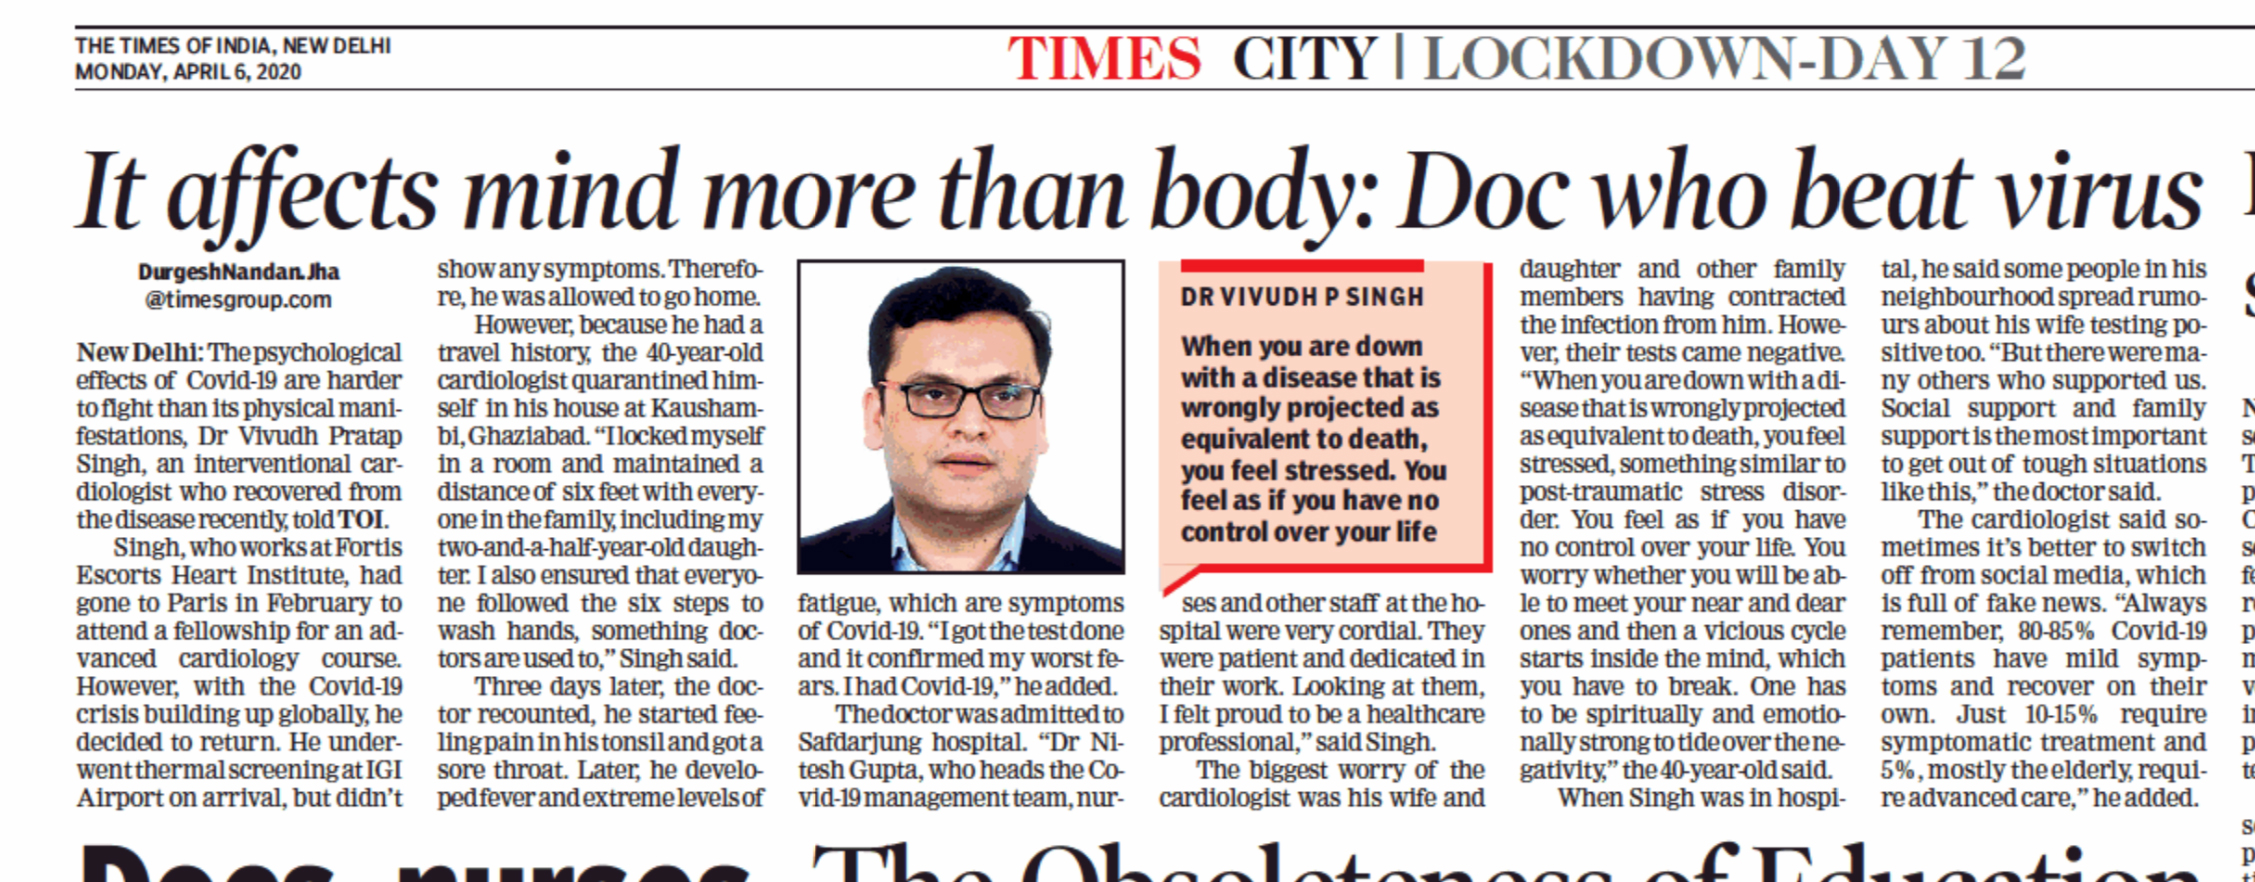 It affects mind more than body: Doc who beat virus